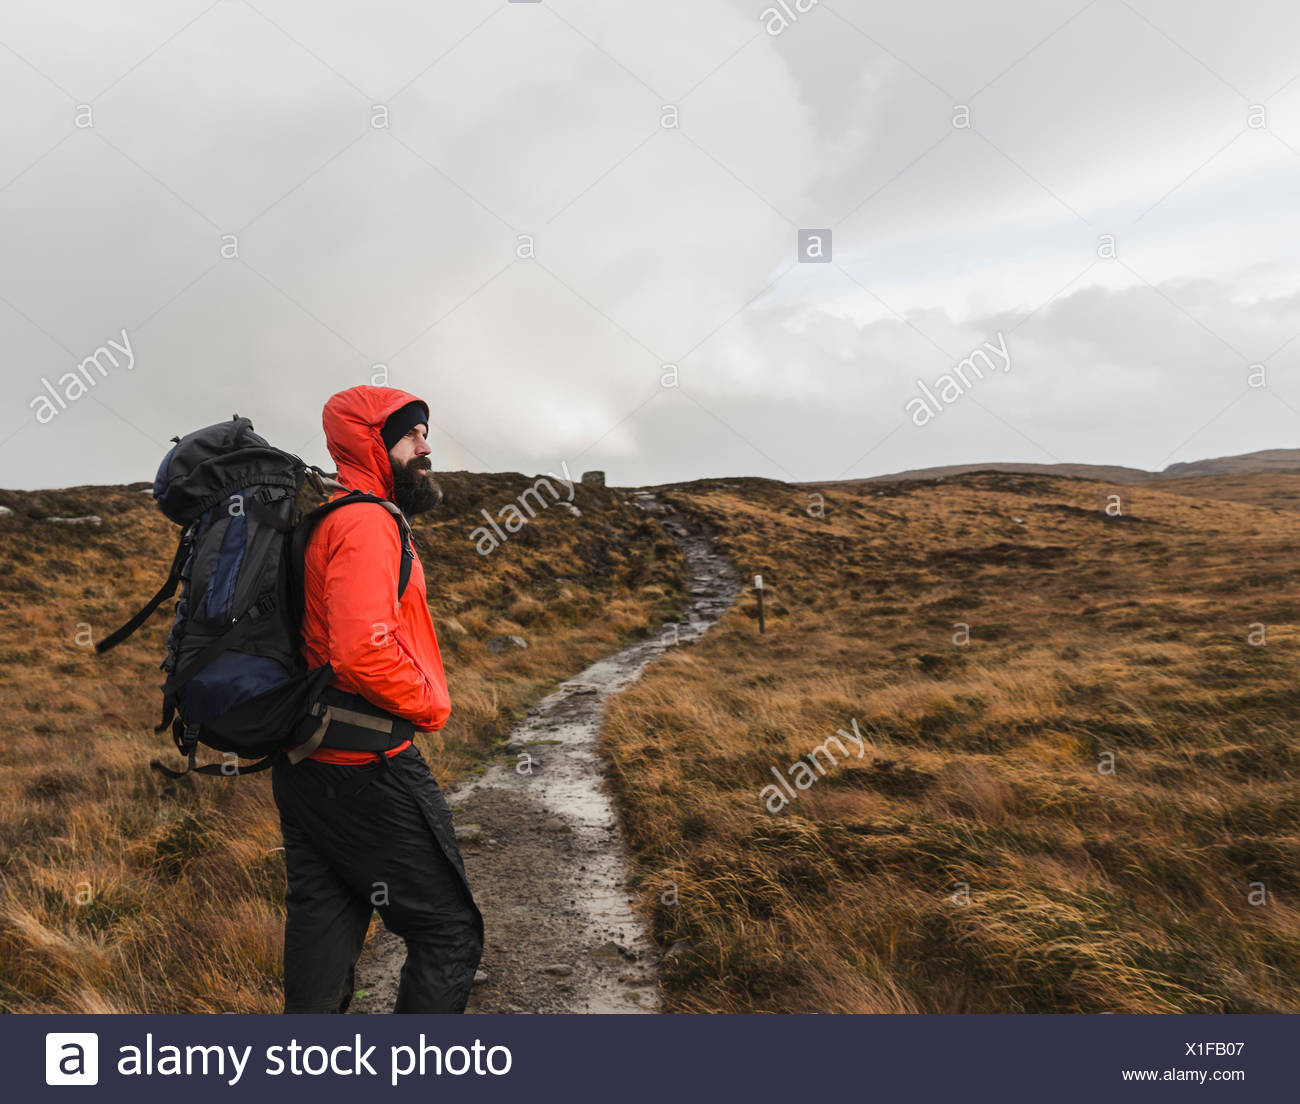 A man in winter clothing, waterproof jacket and rucksack in open countryside by a path. - Stock Image